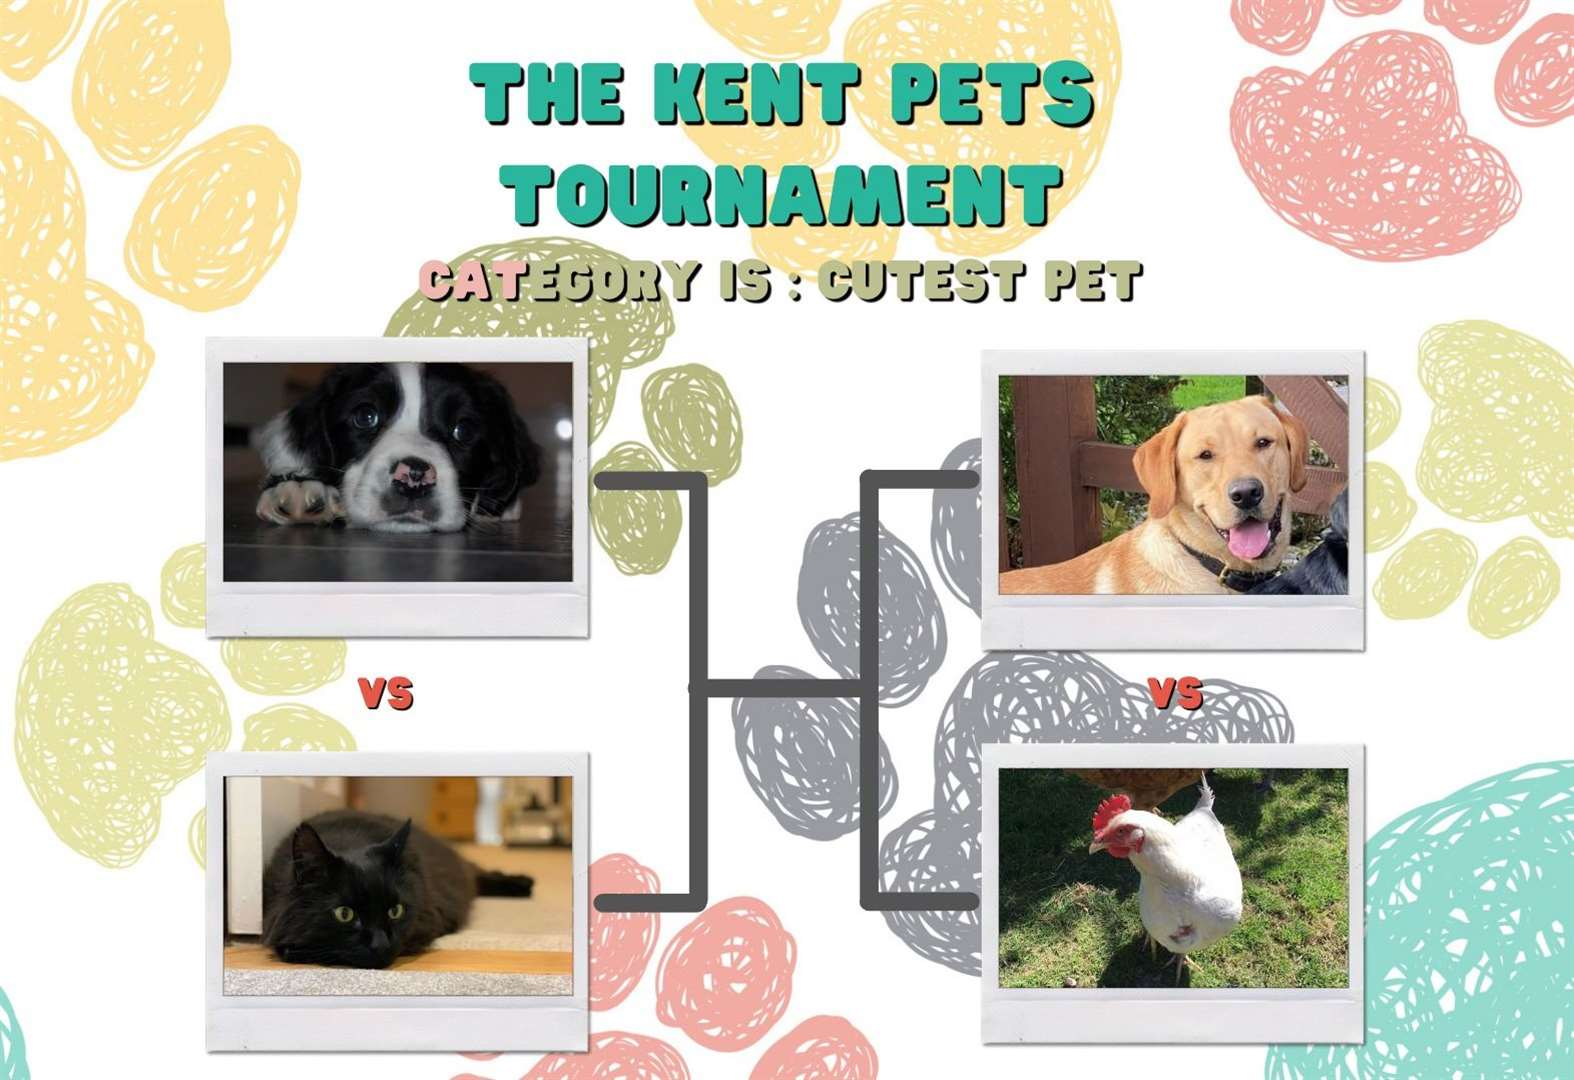 Vote in the 2nd round of the Kent Pets Tournament